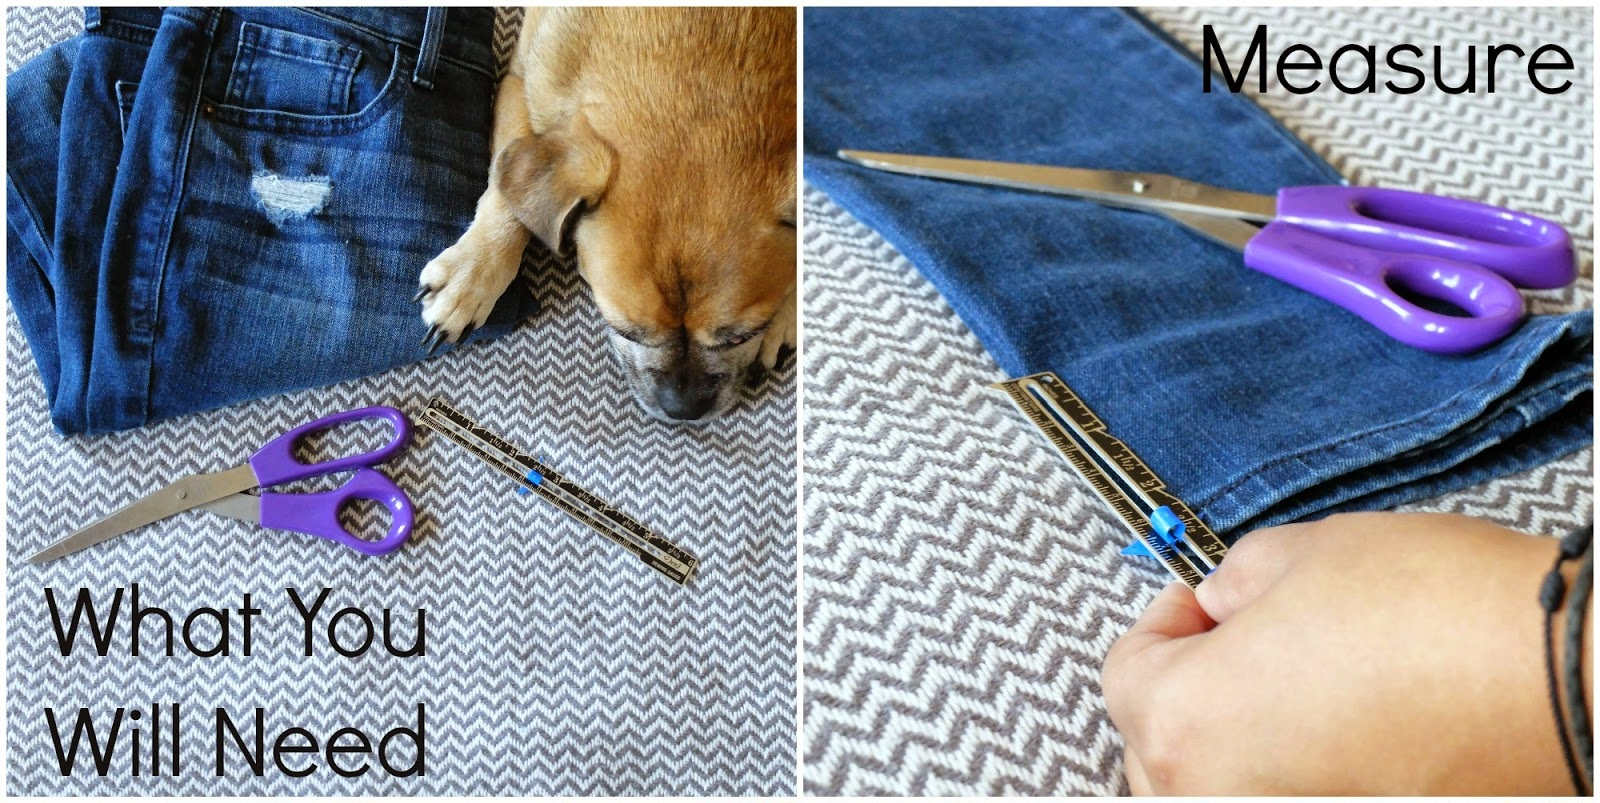 This amazing DIY with jeans knock me out of my pants, and you can easily do it yourself =)